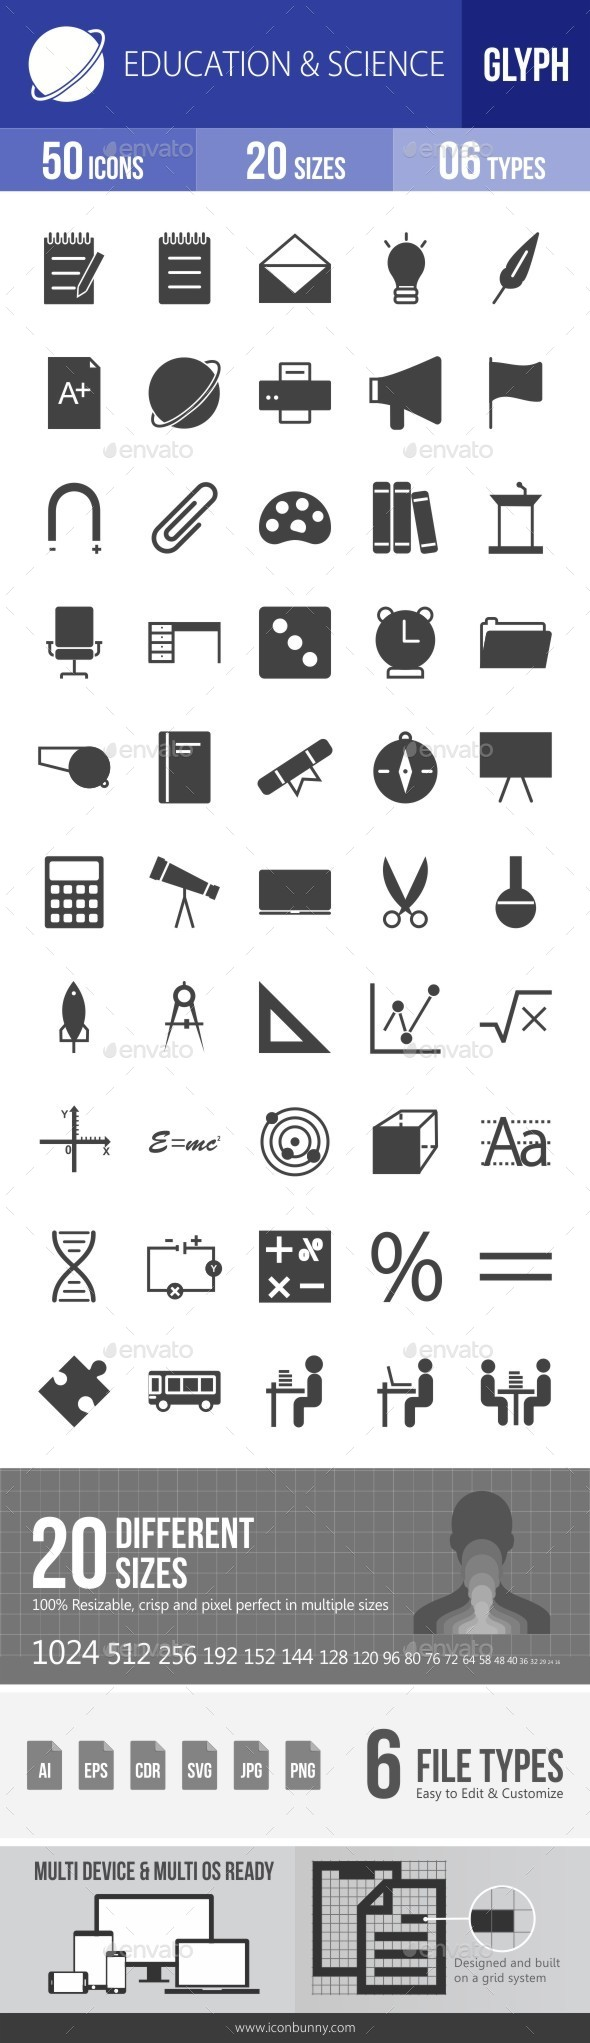 Education & Science Glyph Icons - Icons